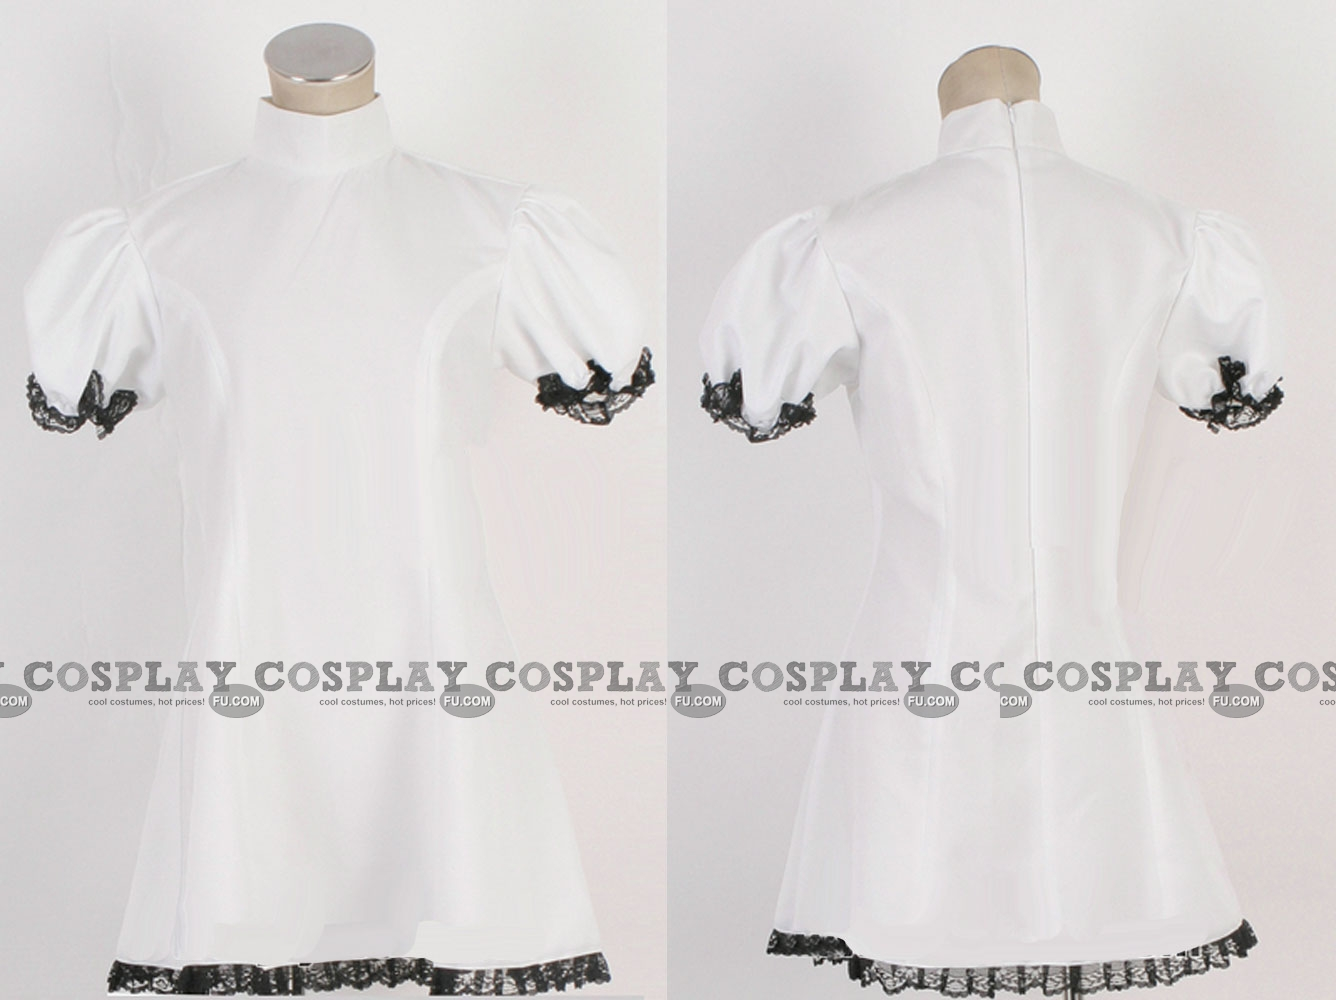 Cirucci Cosplay Costume from Bleach